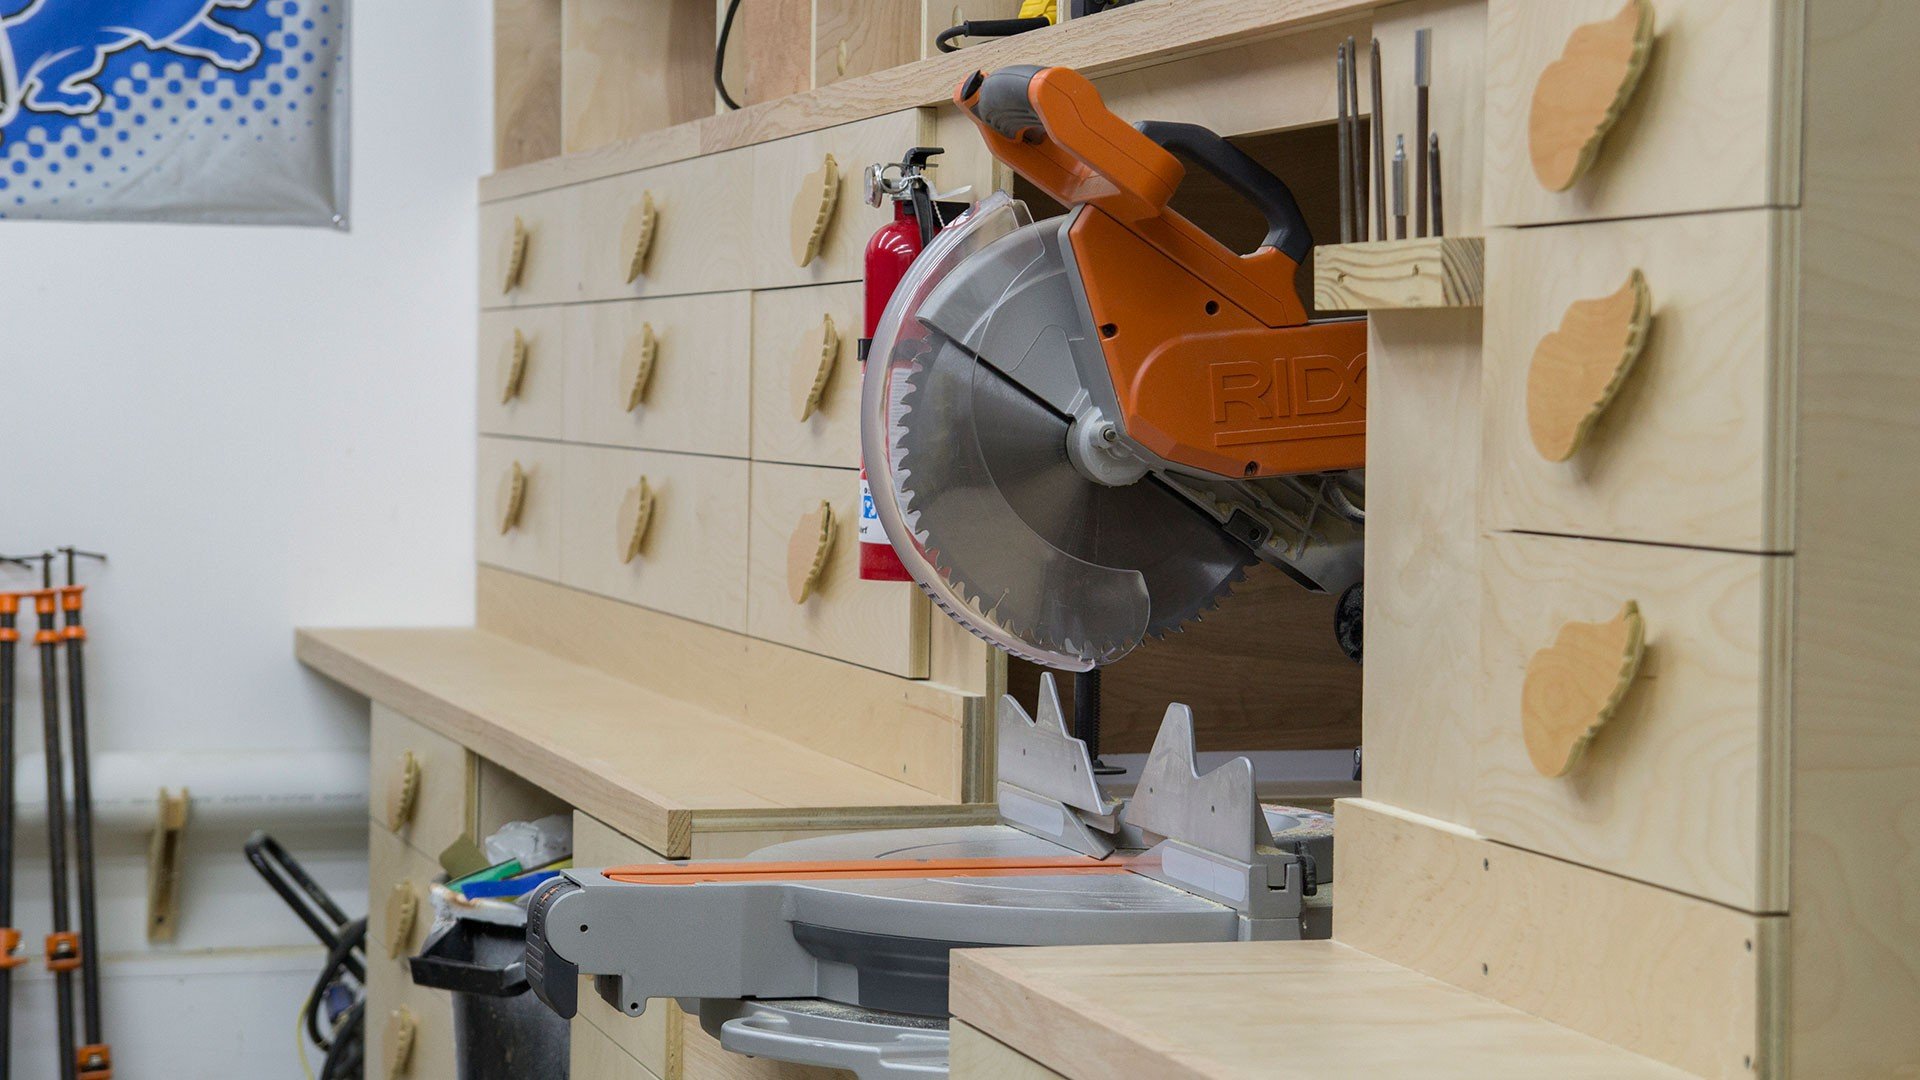 miter saw station storage boxes and drawer fronts (18)